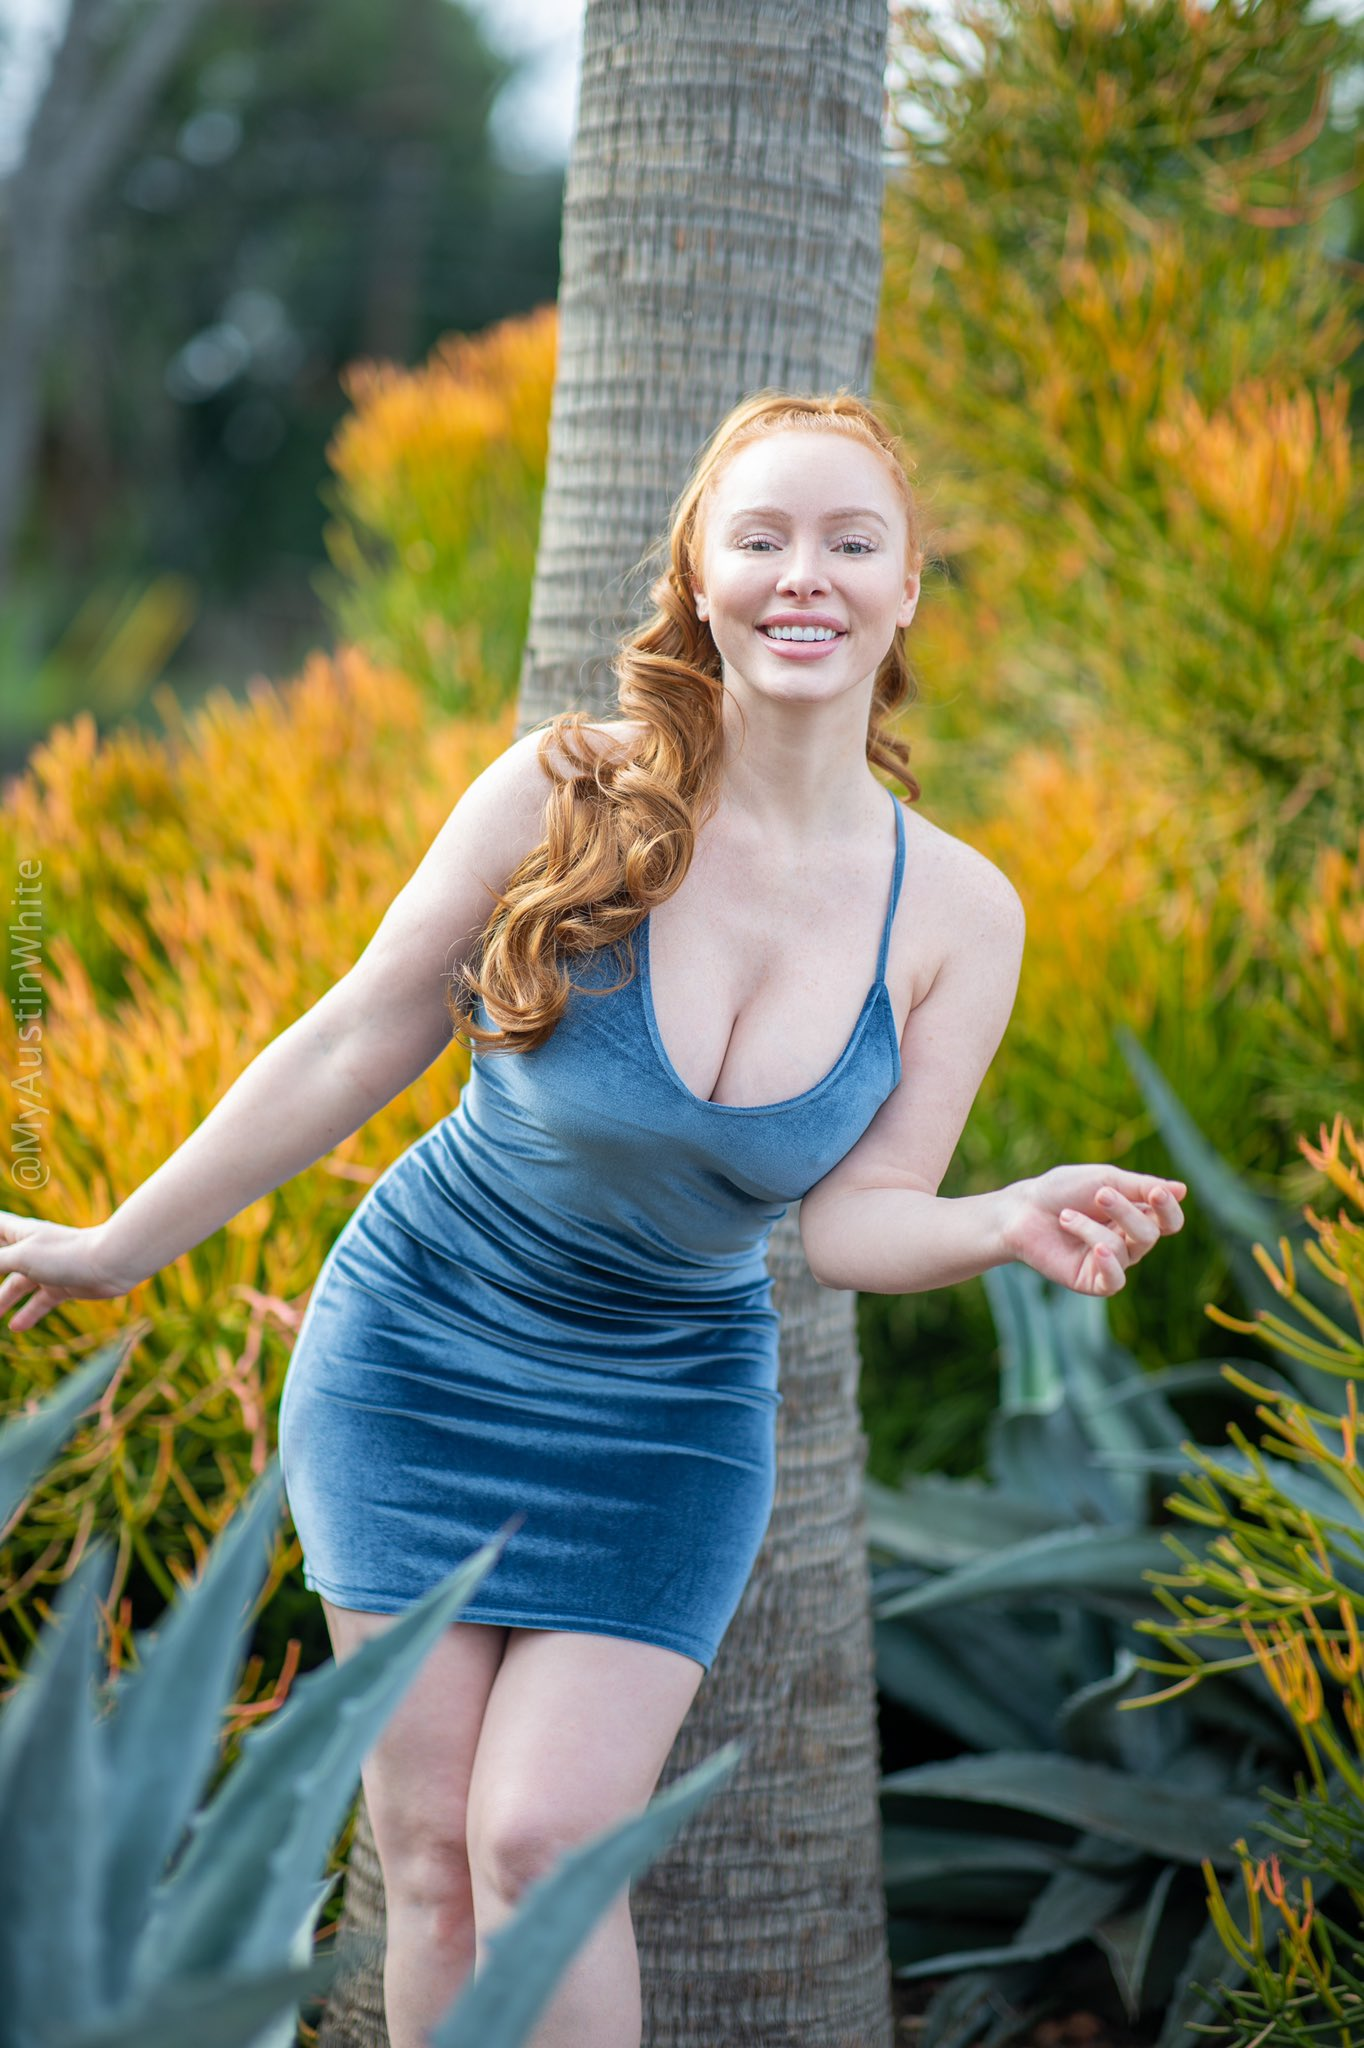 Austin White - Busty Red hair Model Nudes - Page 5 of 6